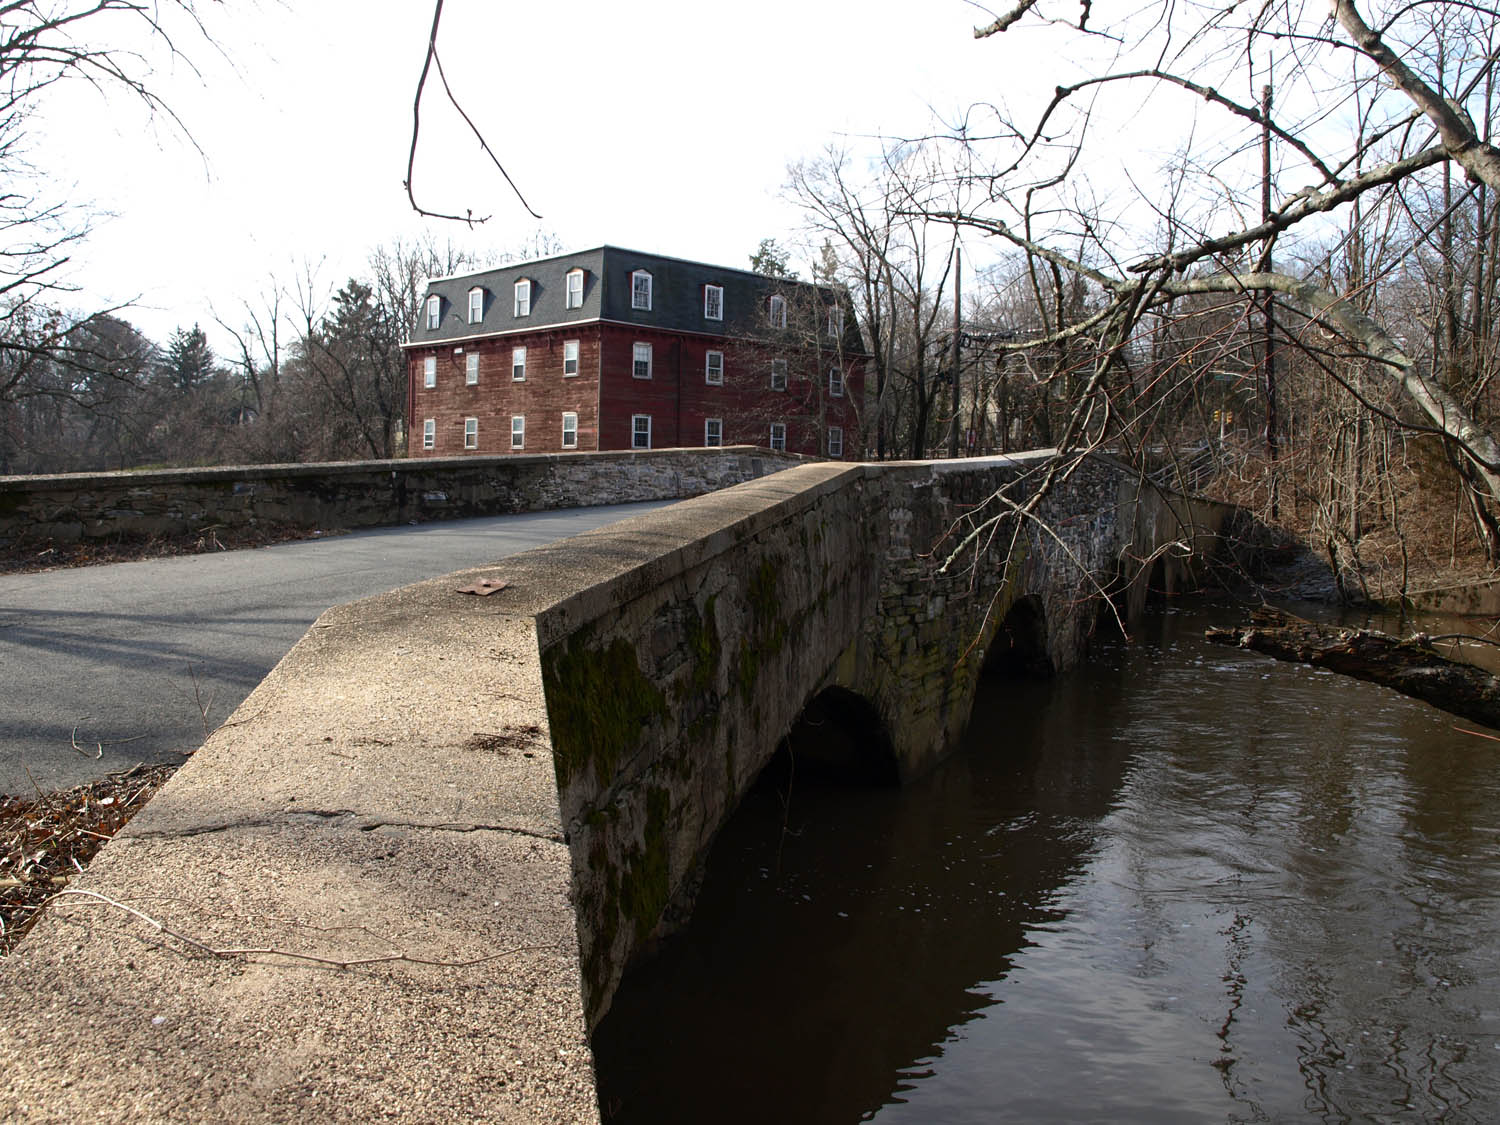 Kingston Mill and Bridge